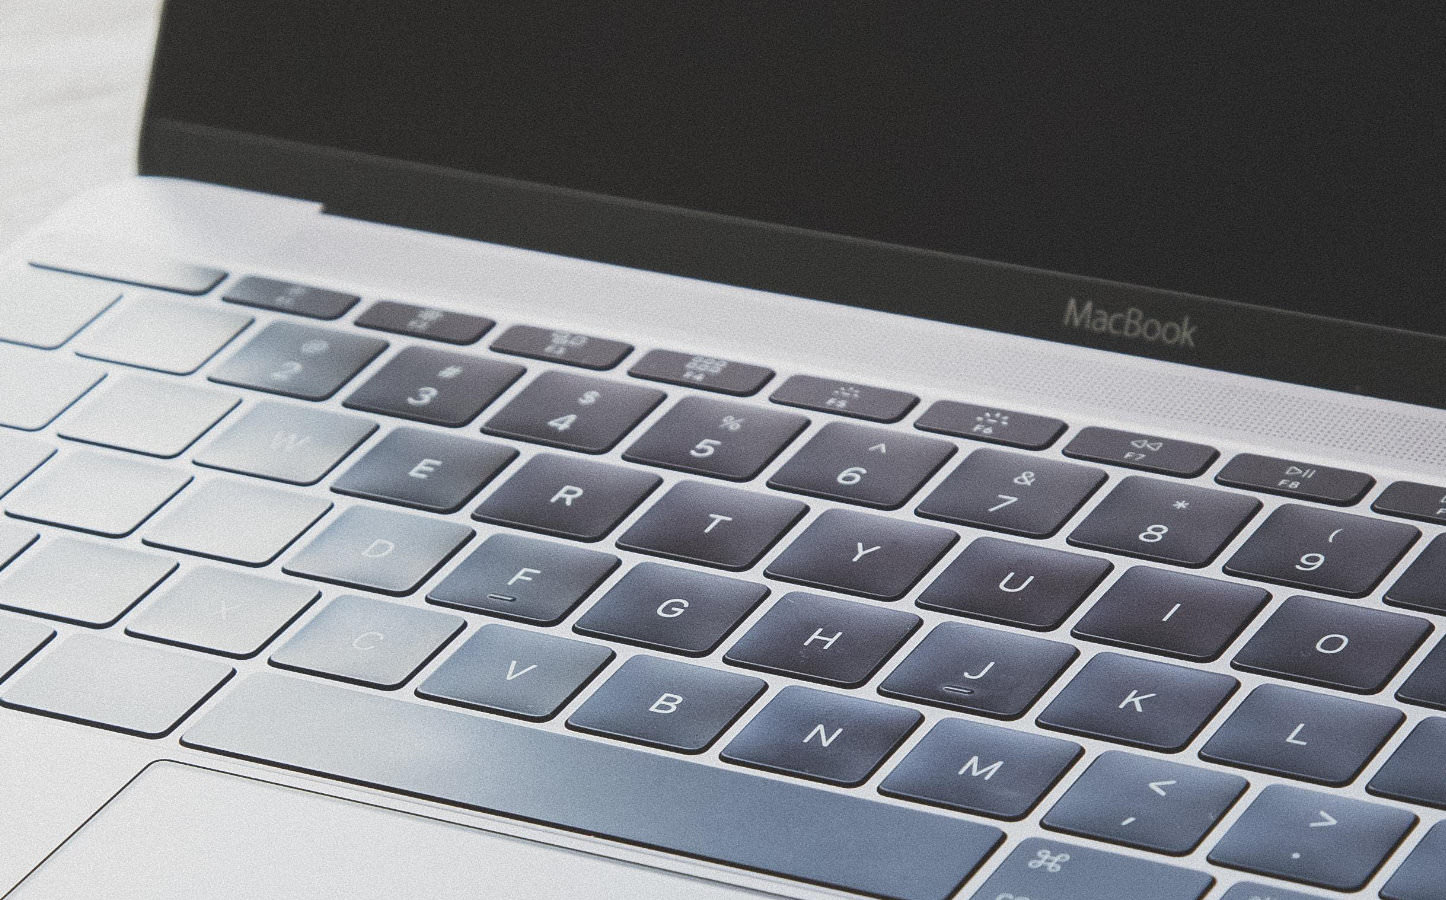 Macbook 12inch keyboard